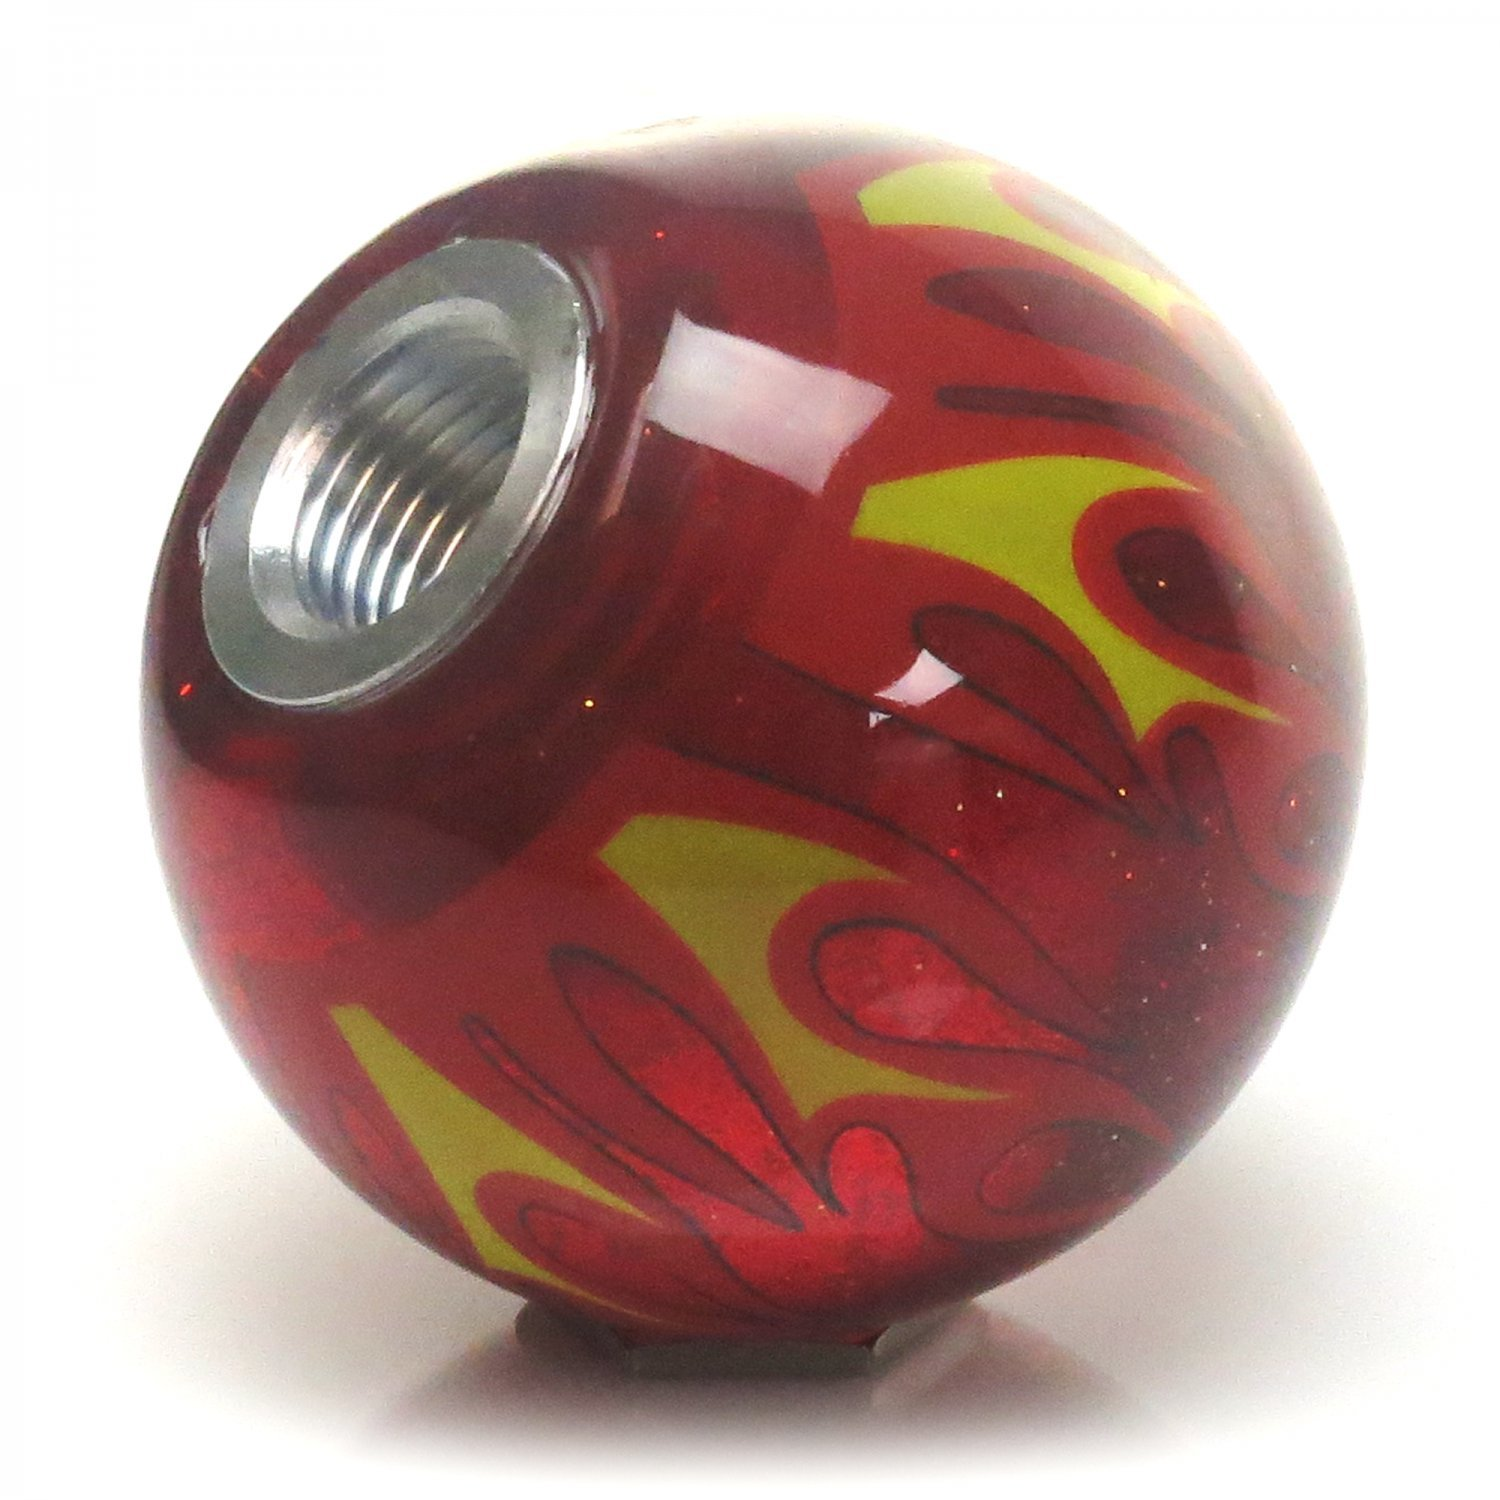 Orange Bus American Shifter 240190 Red Flame Metal Flake Shift Knob with M16 x 1.5 Insert